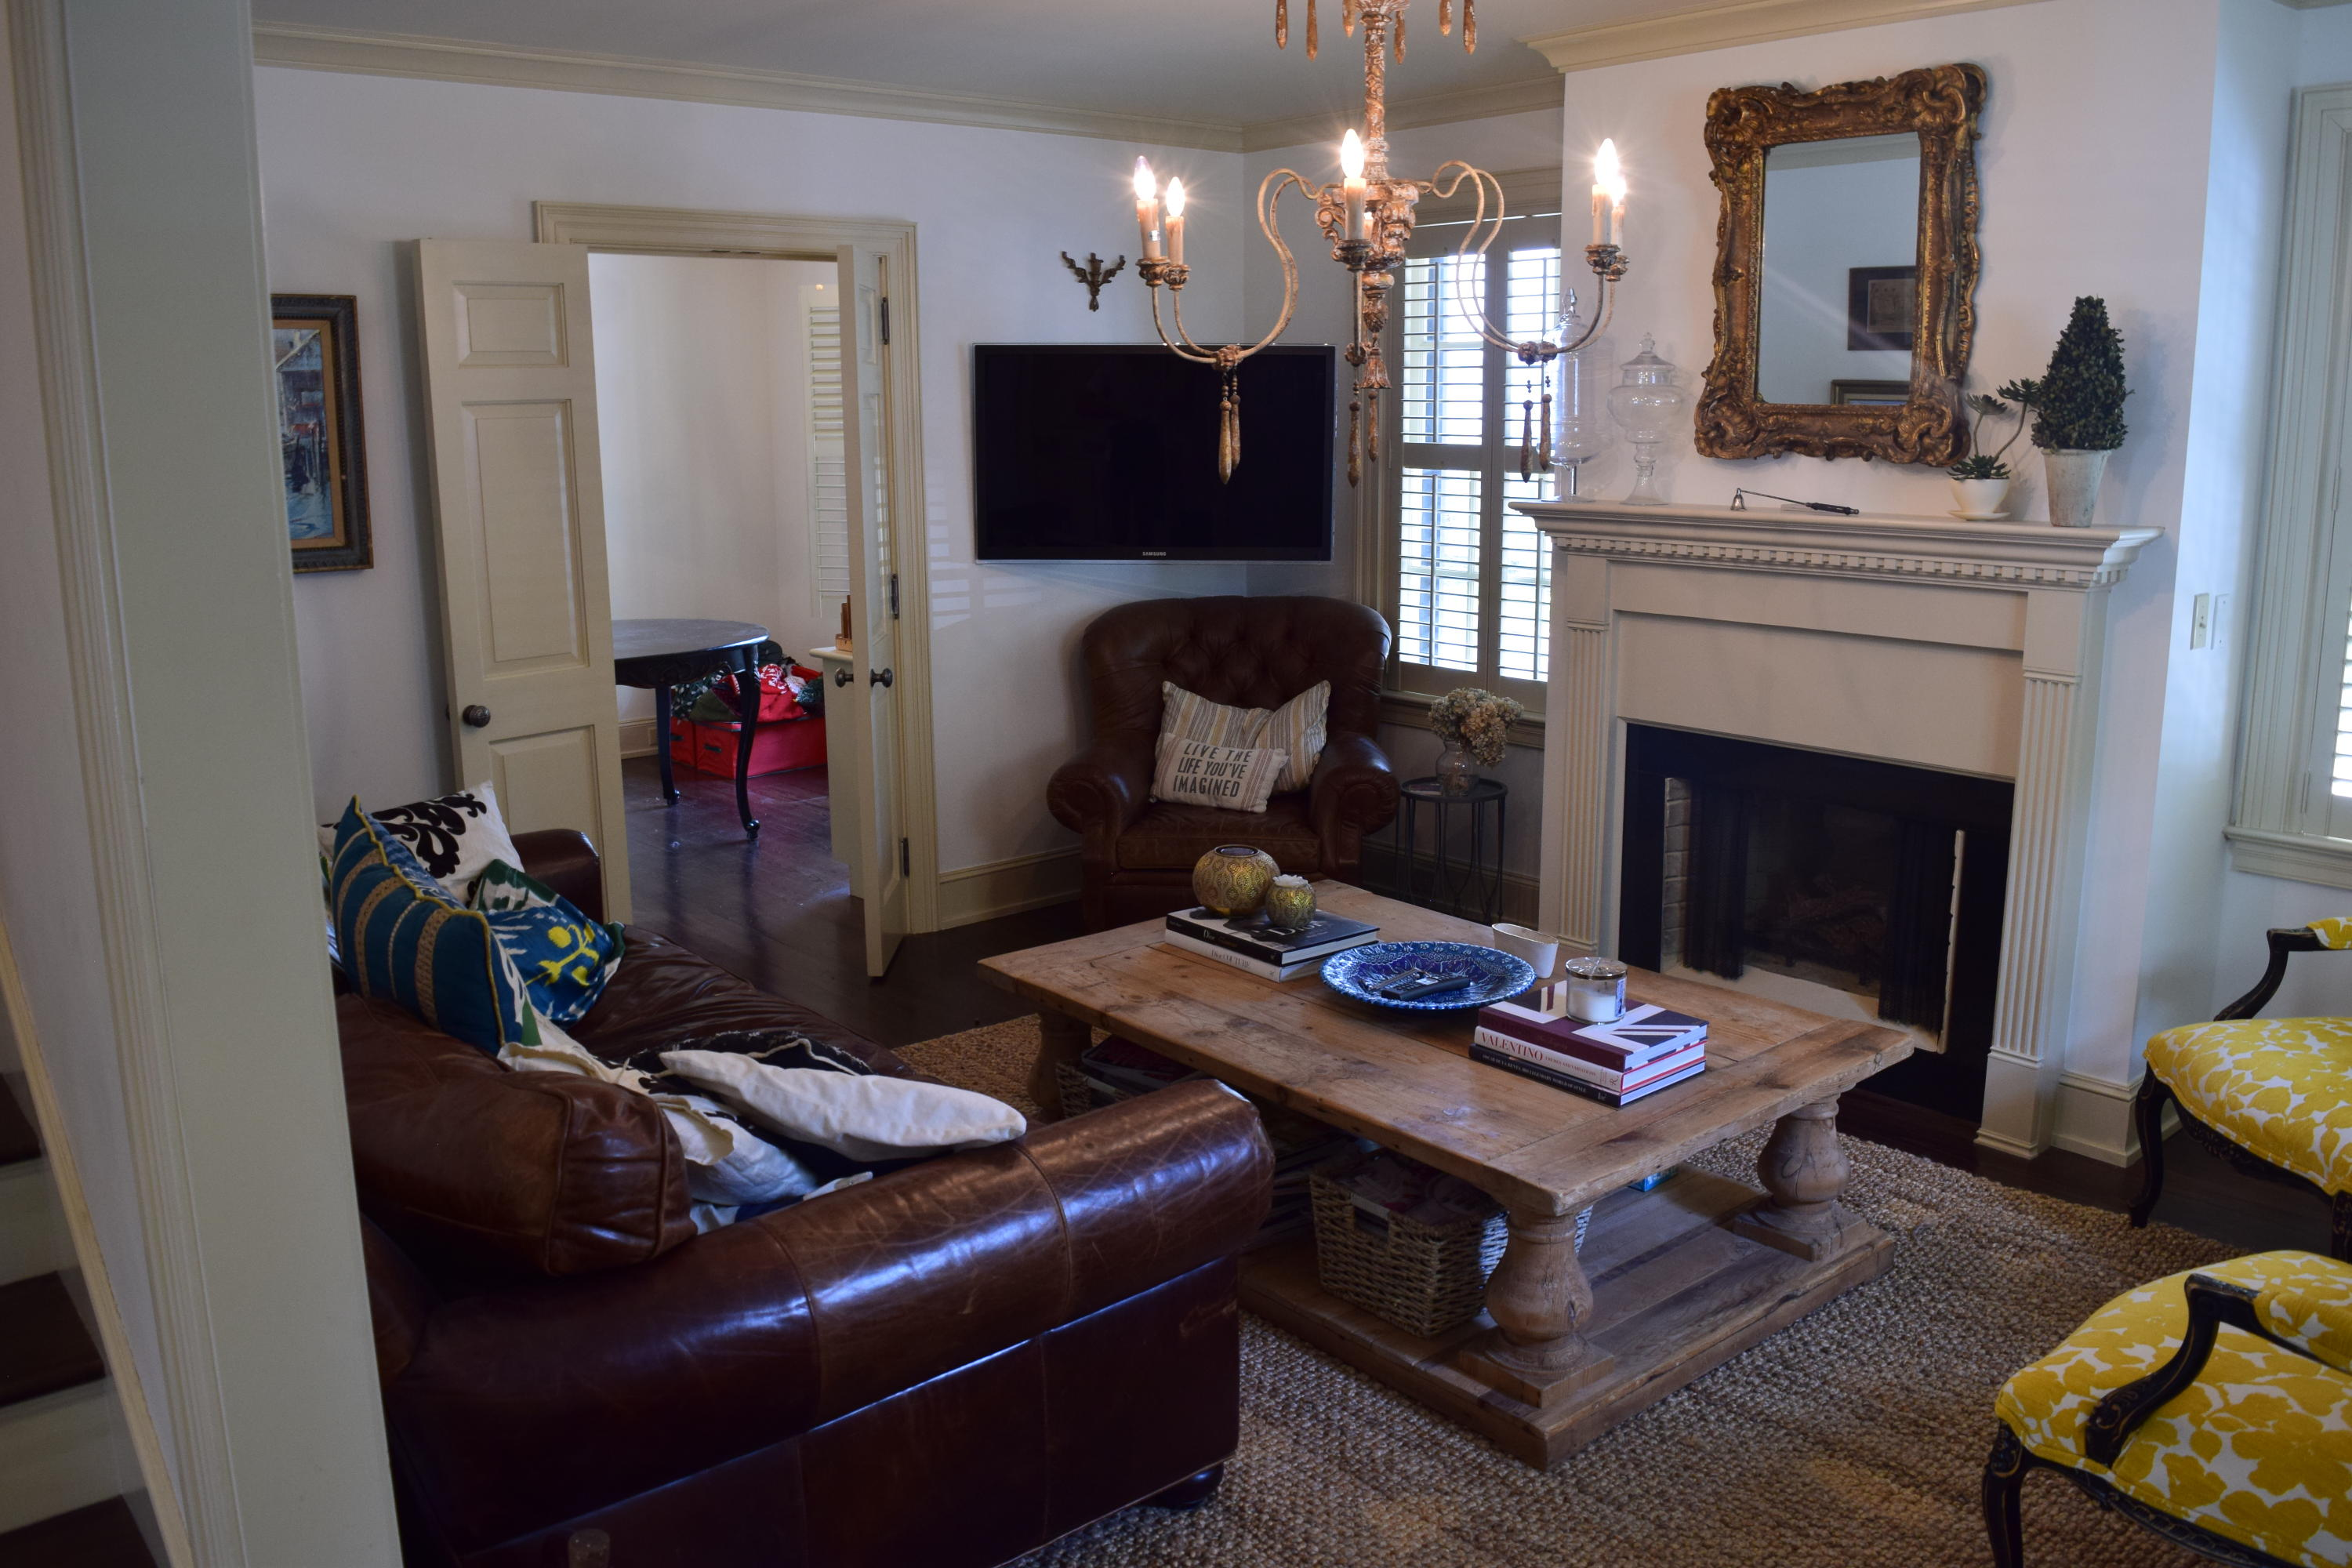 Home for sale 100 East Bay Street, South Of Broad, Downtown Charleston, SC